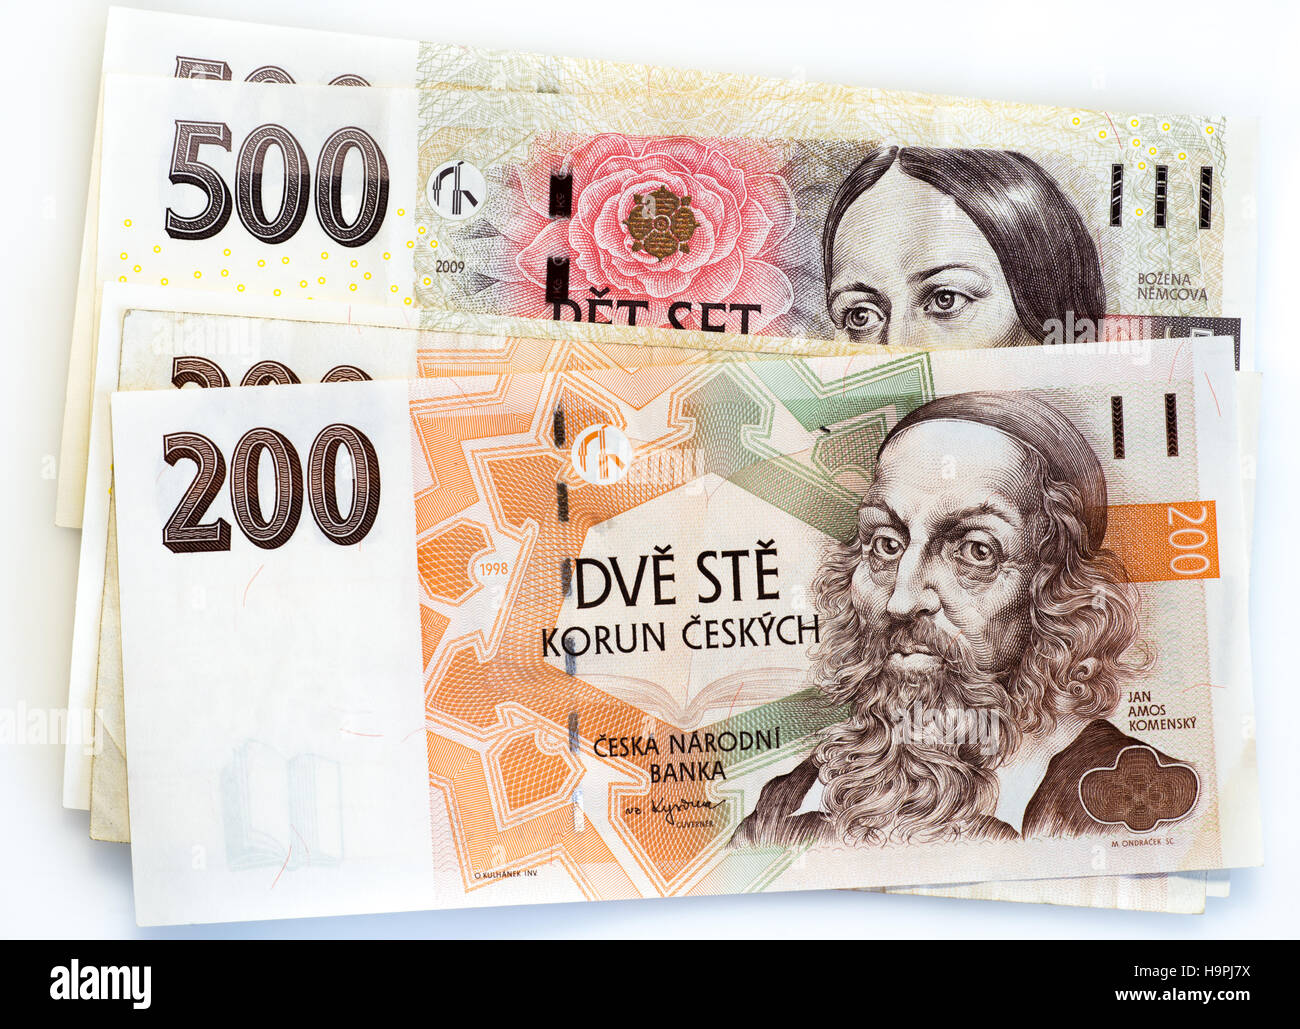 czech republic currency